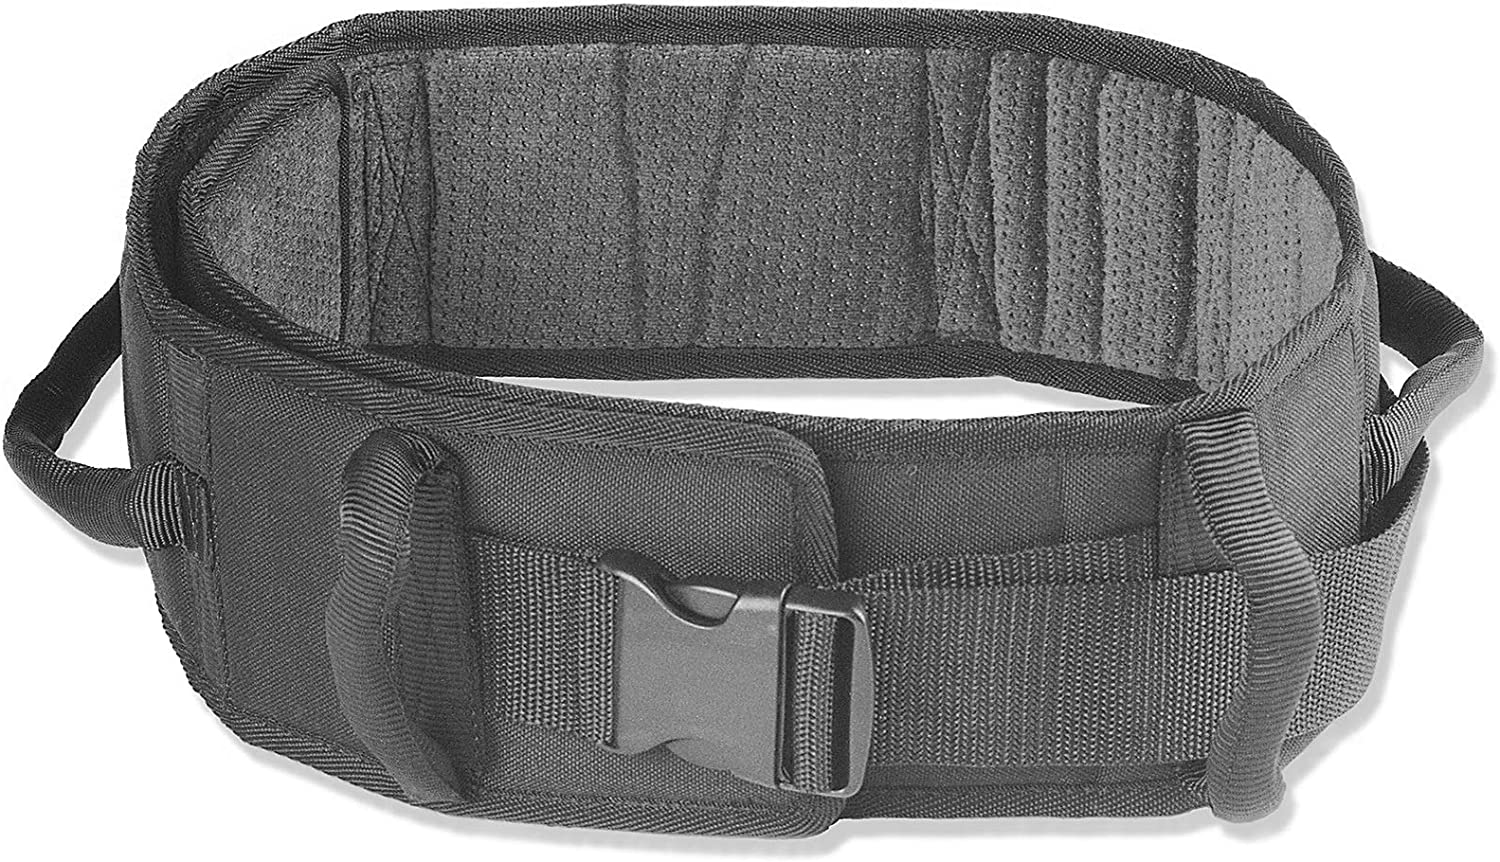 "Safetysure® Transfer Belt - Large (42"" - 60""): Health & Personal Care"